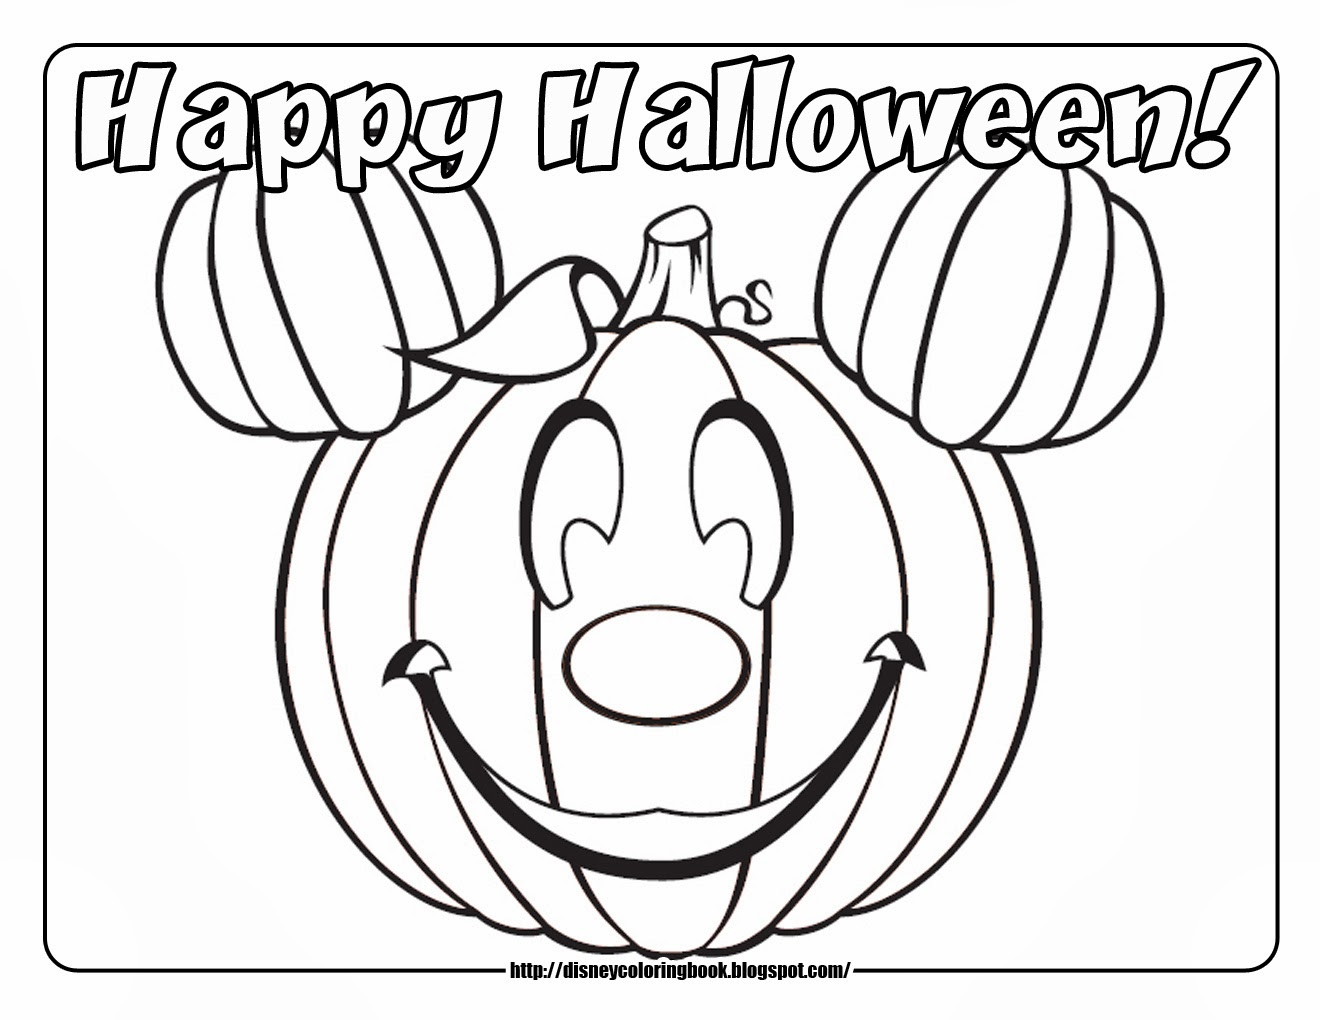 Halloween coloring pages free printable minnesota miranda for Printable halloween coloring pages